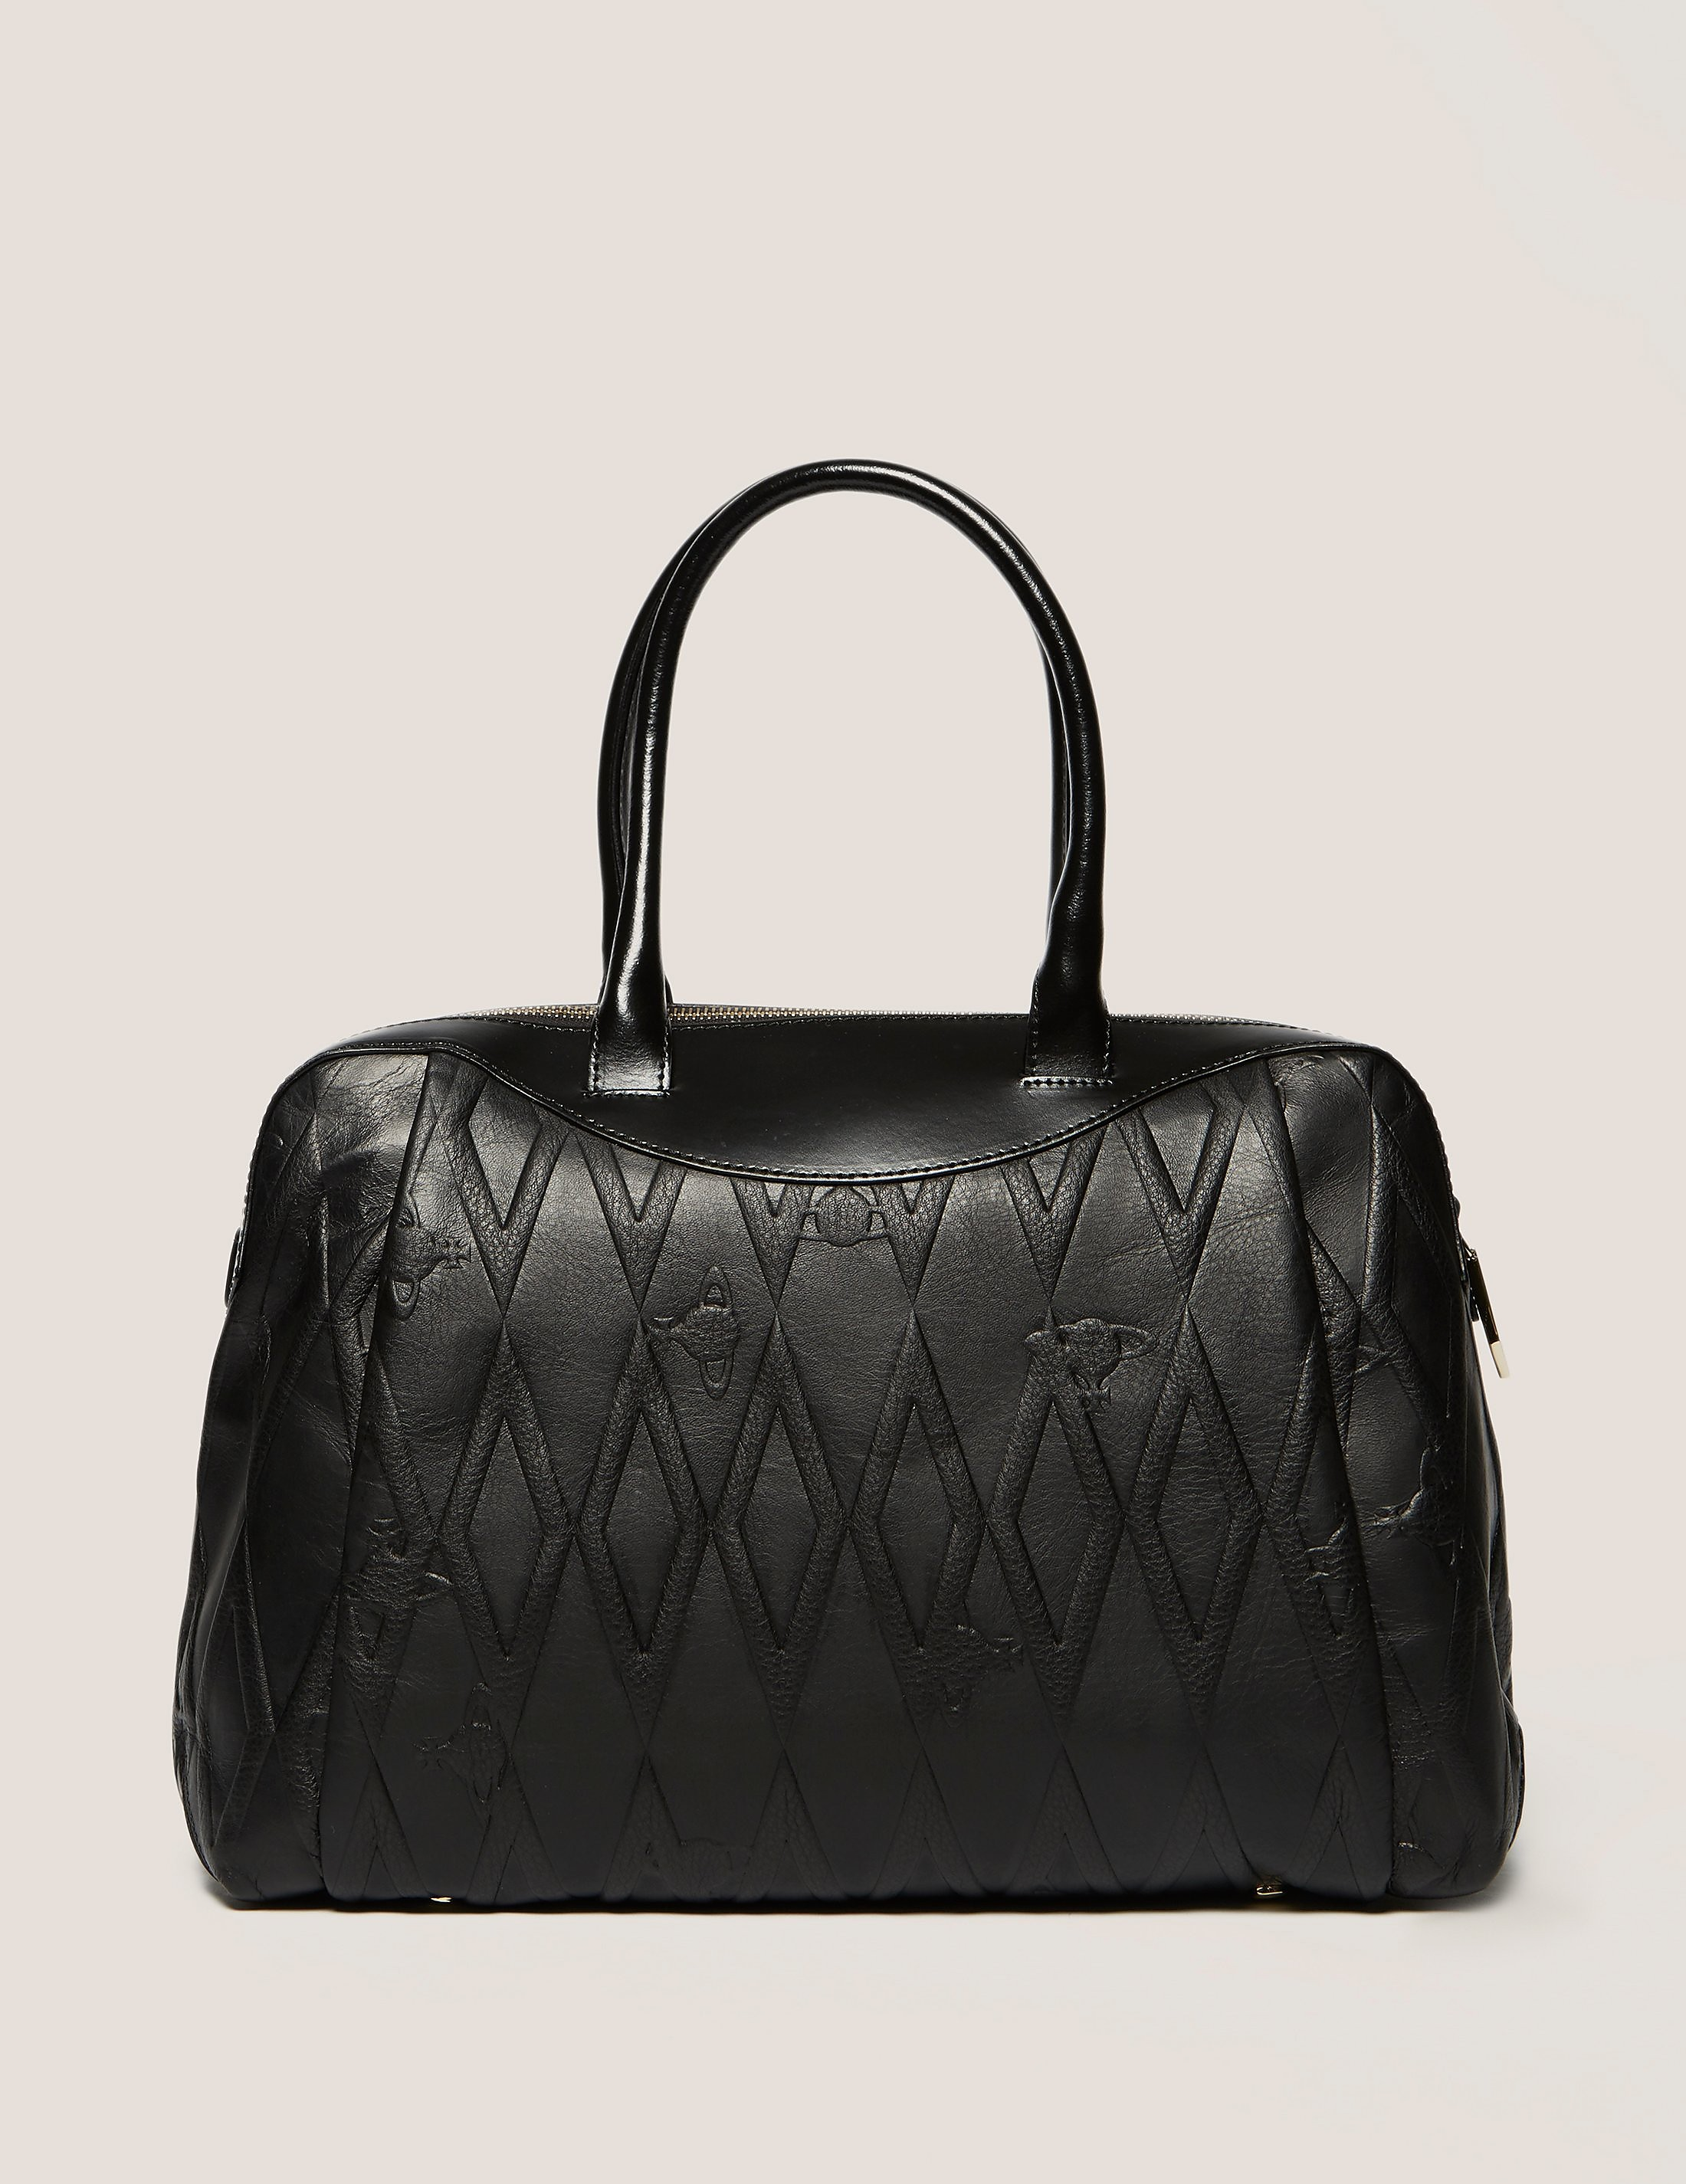 Vivienne Westwood Diamond Orb Shopper Bag